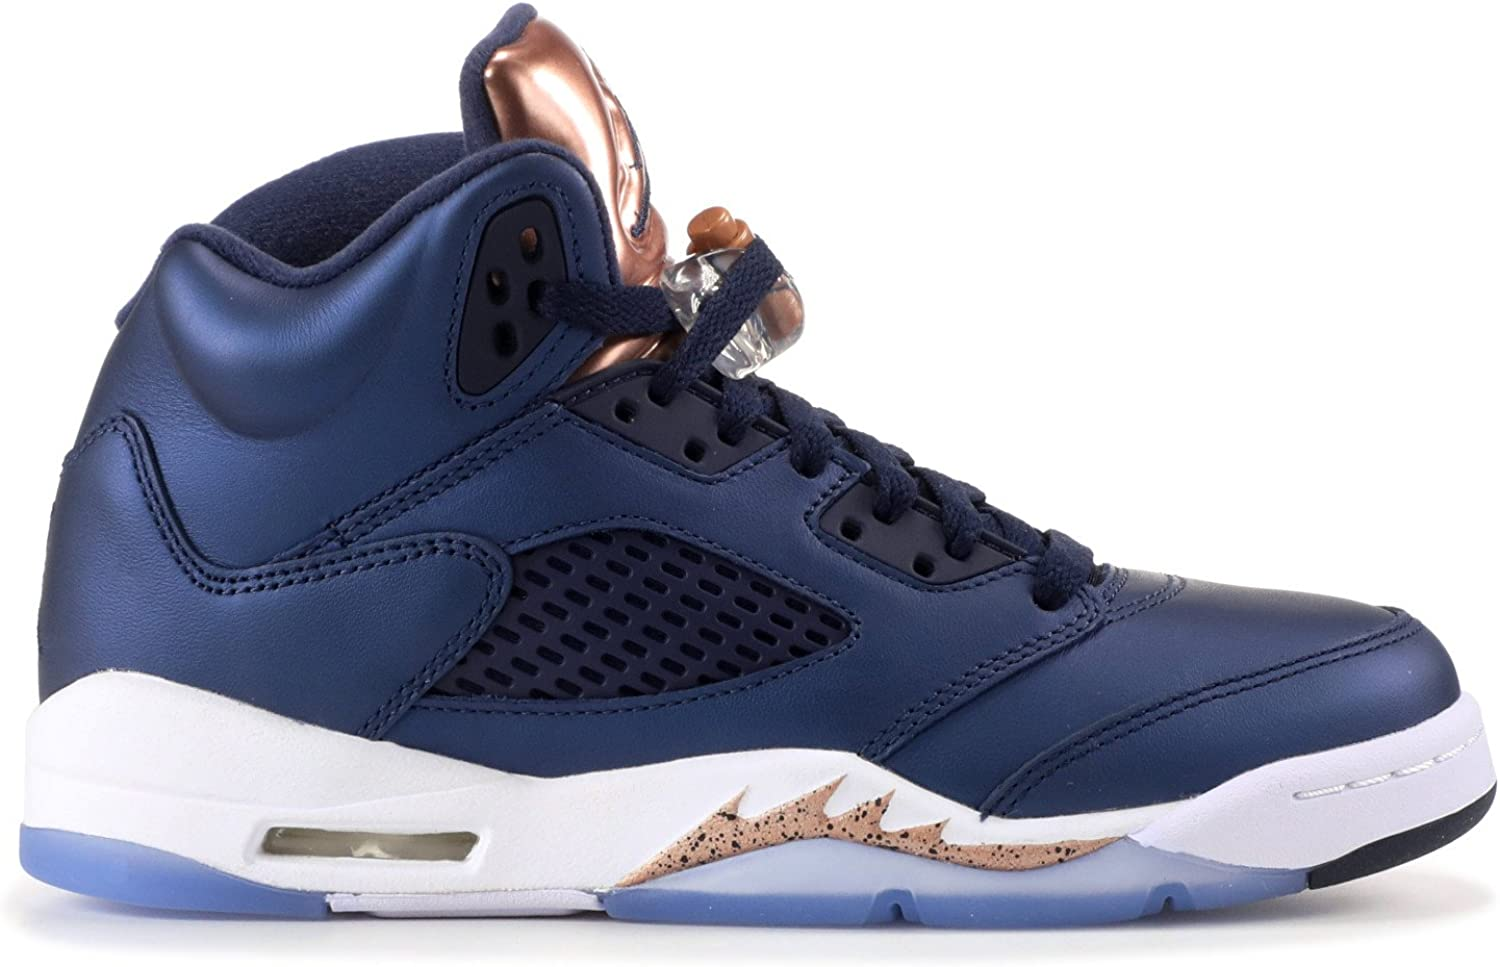 NIKE Boys Jordan 5 Retro BP Bronze Medal Obsidian//White-Bronze Leather Size 3.5Y